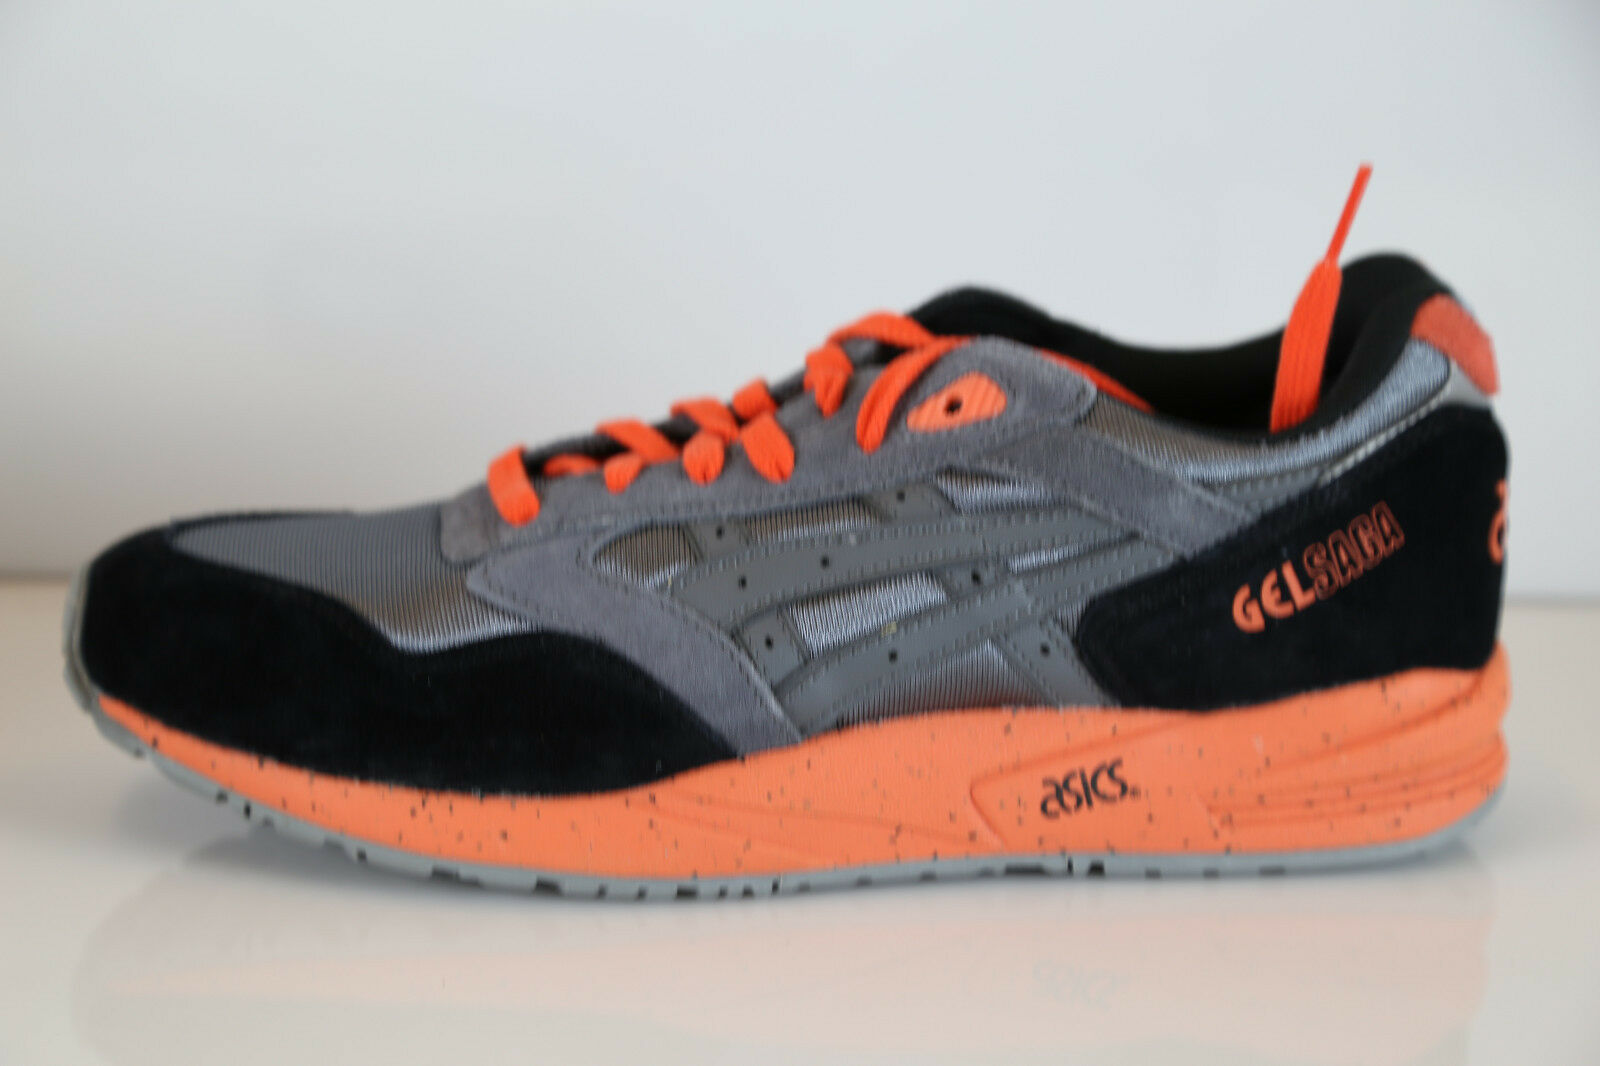 Asics Gel Saga grau Orange H137K-1105 9.5-13 lyte 1